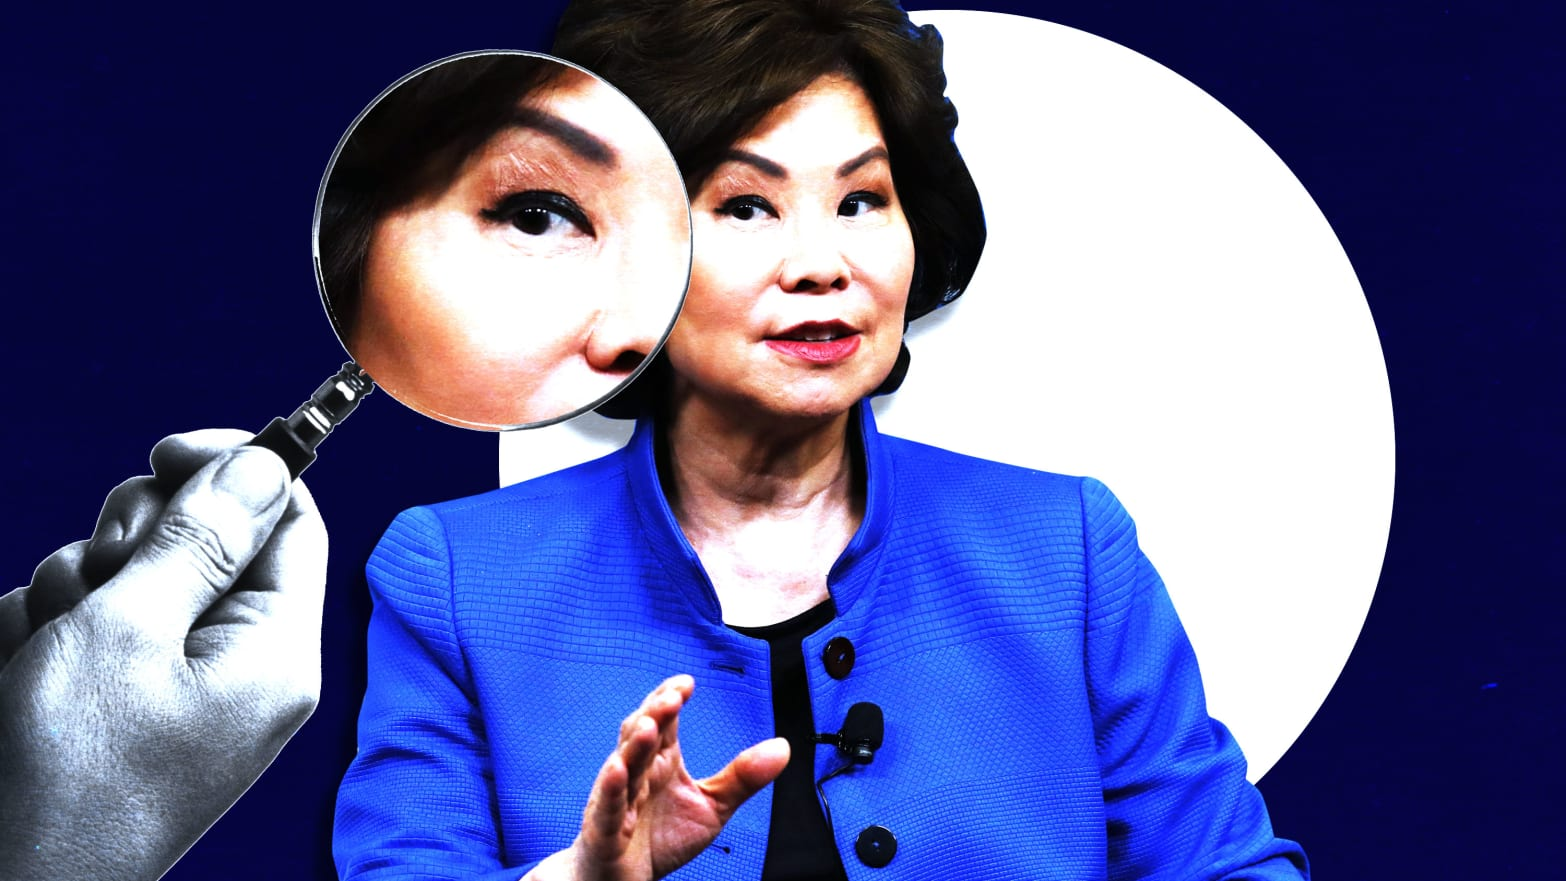 Elaine Chao Investigation: House Dems Seems Poised to Launch One, Even as They Fear Retribution